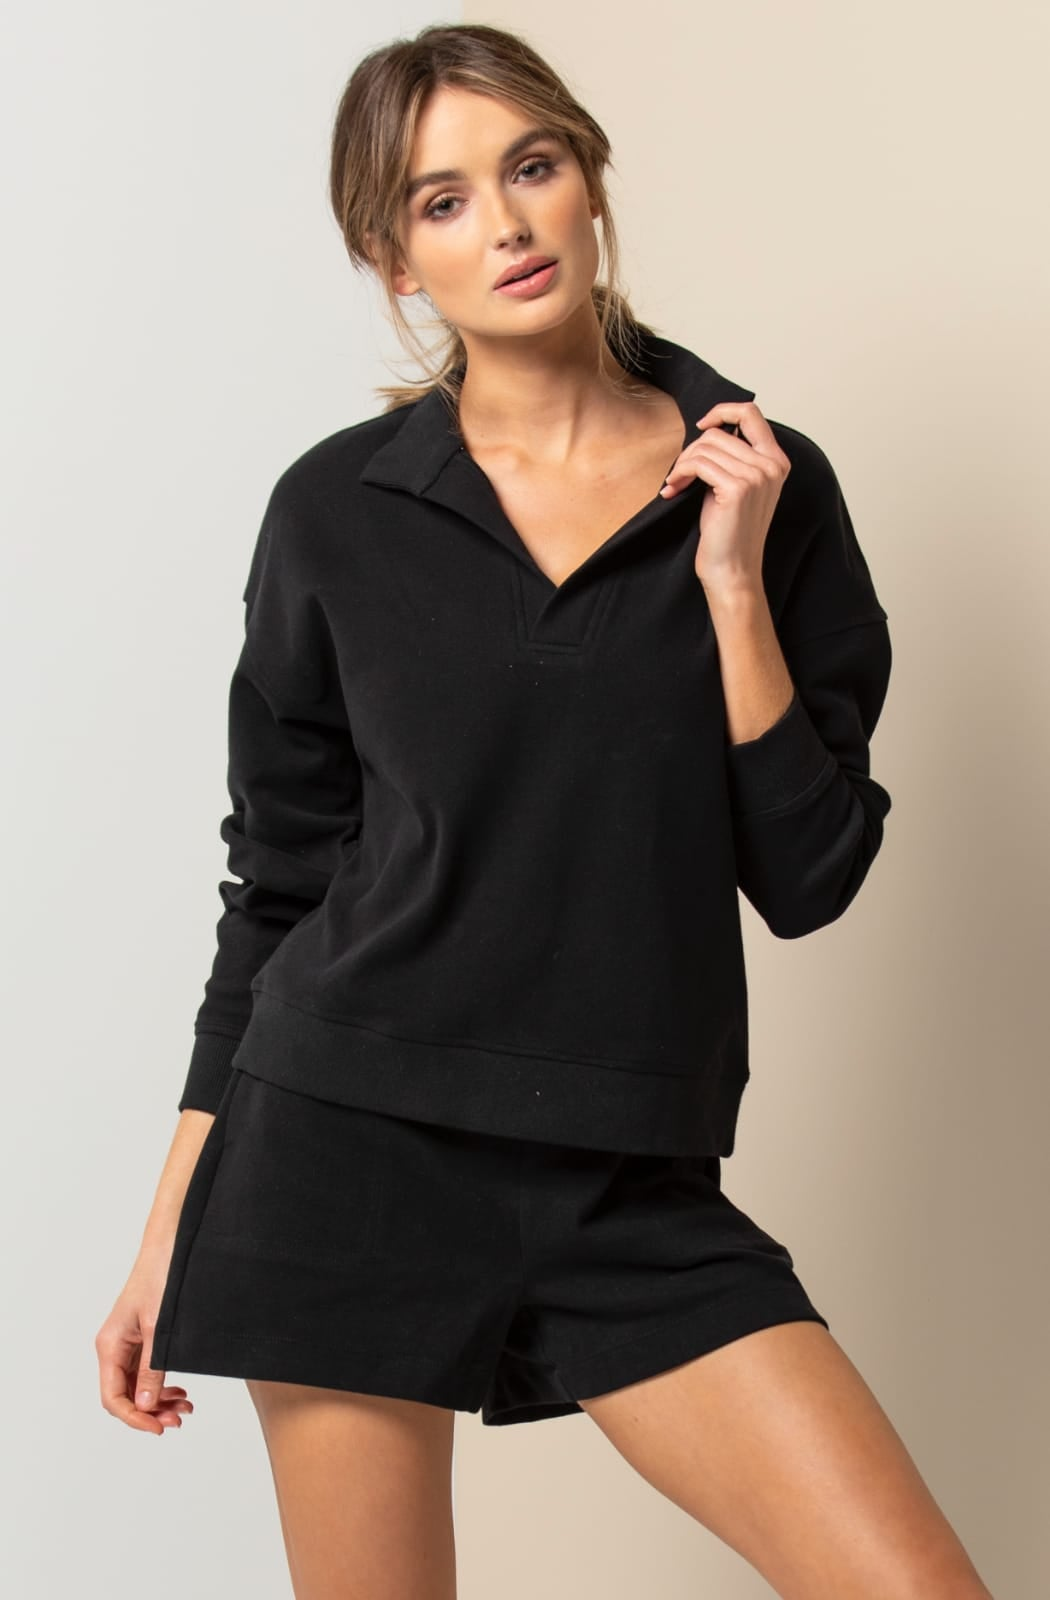 Forever New Clothing | Women's Knitwear dresses and sweaters